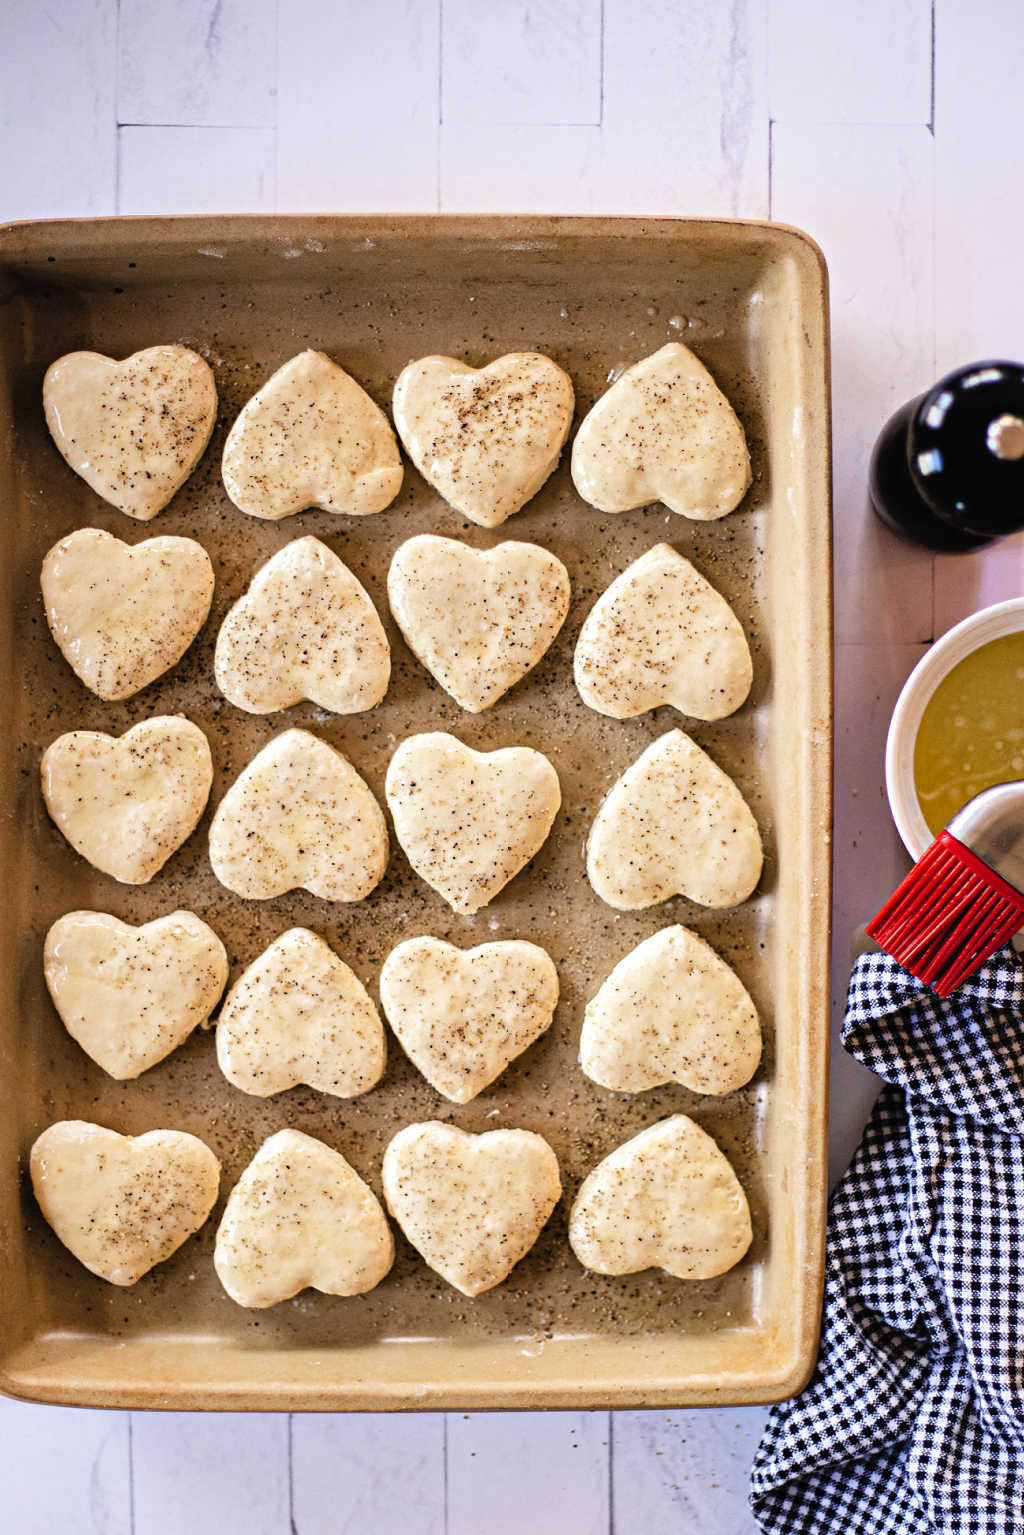 bread flour biscuits cut into heart shapes on a baking sheet.